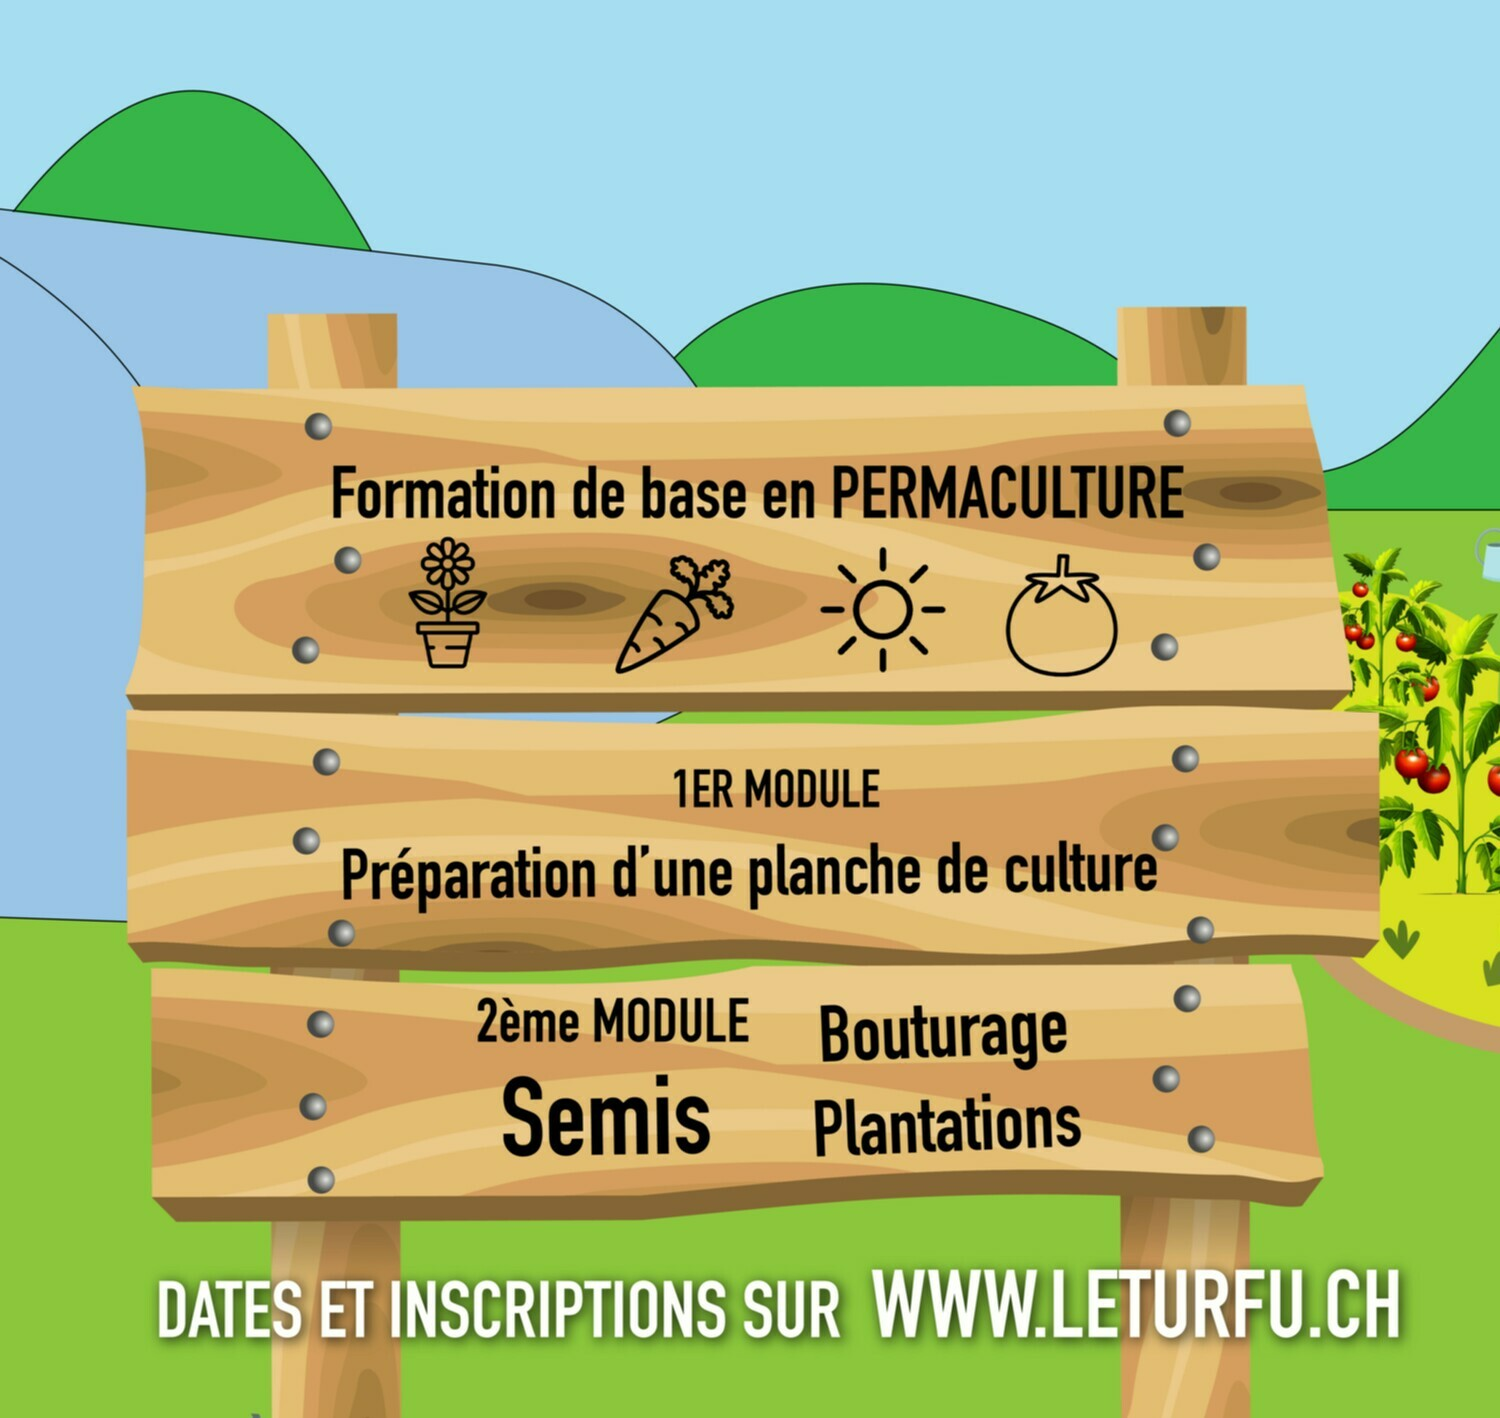 Formation: 05.06.2021 - 06.06.2021